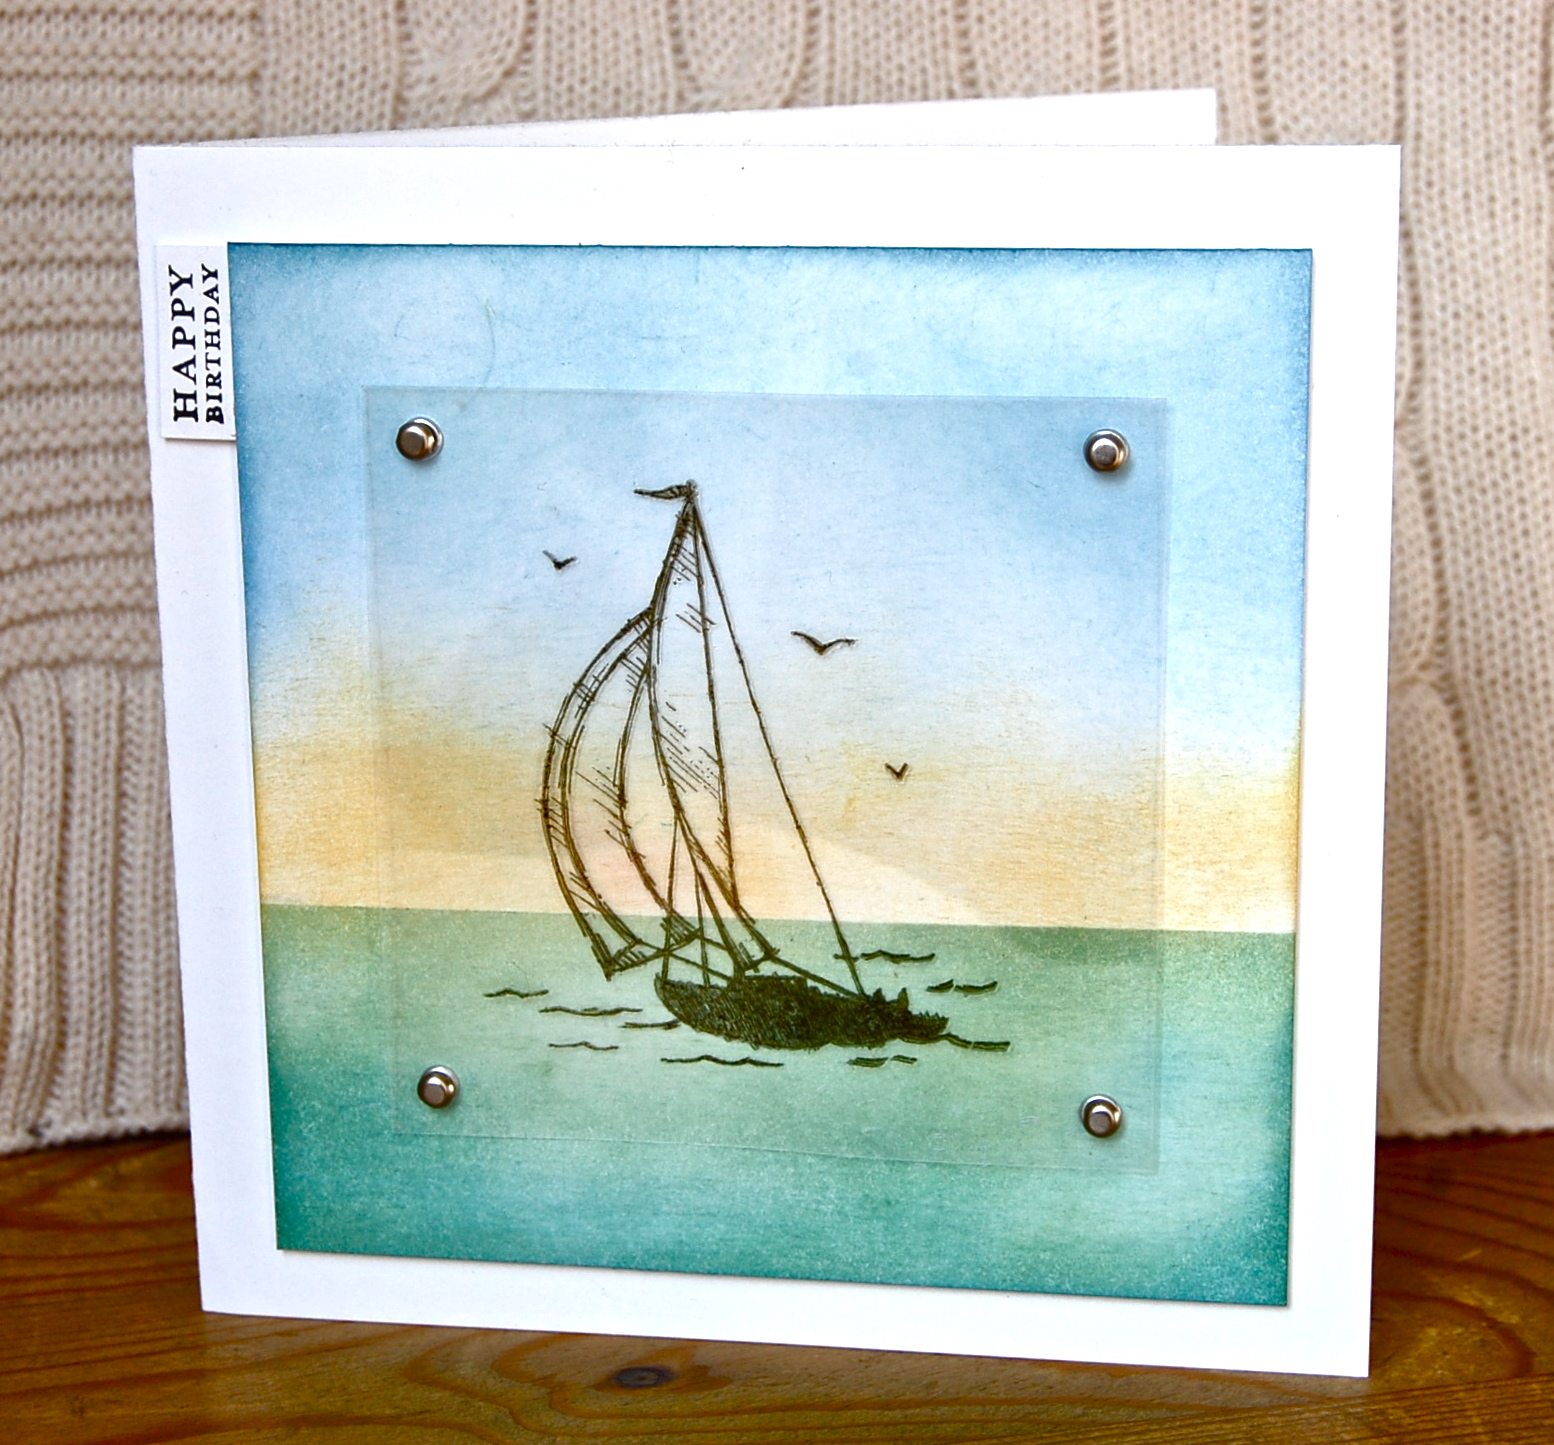 Masculine Card Making Ideas Part - 40: Stampinu0027 Up Ideas And Supplies From Vicky At Crafting Clareu0027s Paper  Moments: Masculine Monday - Using Sail Away And Acetate